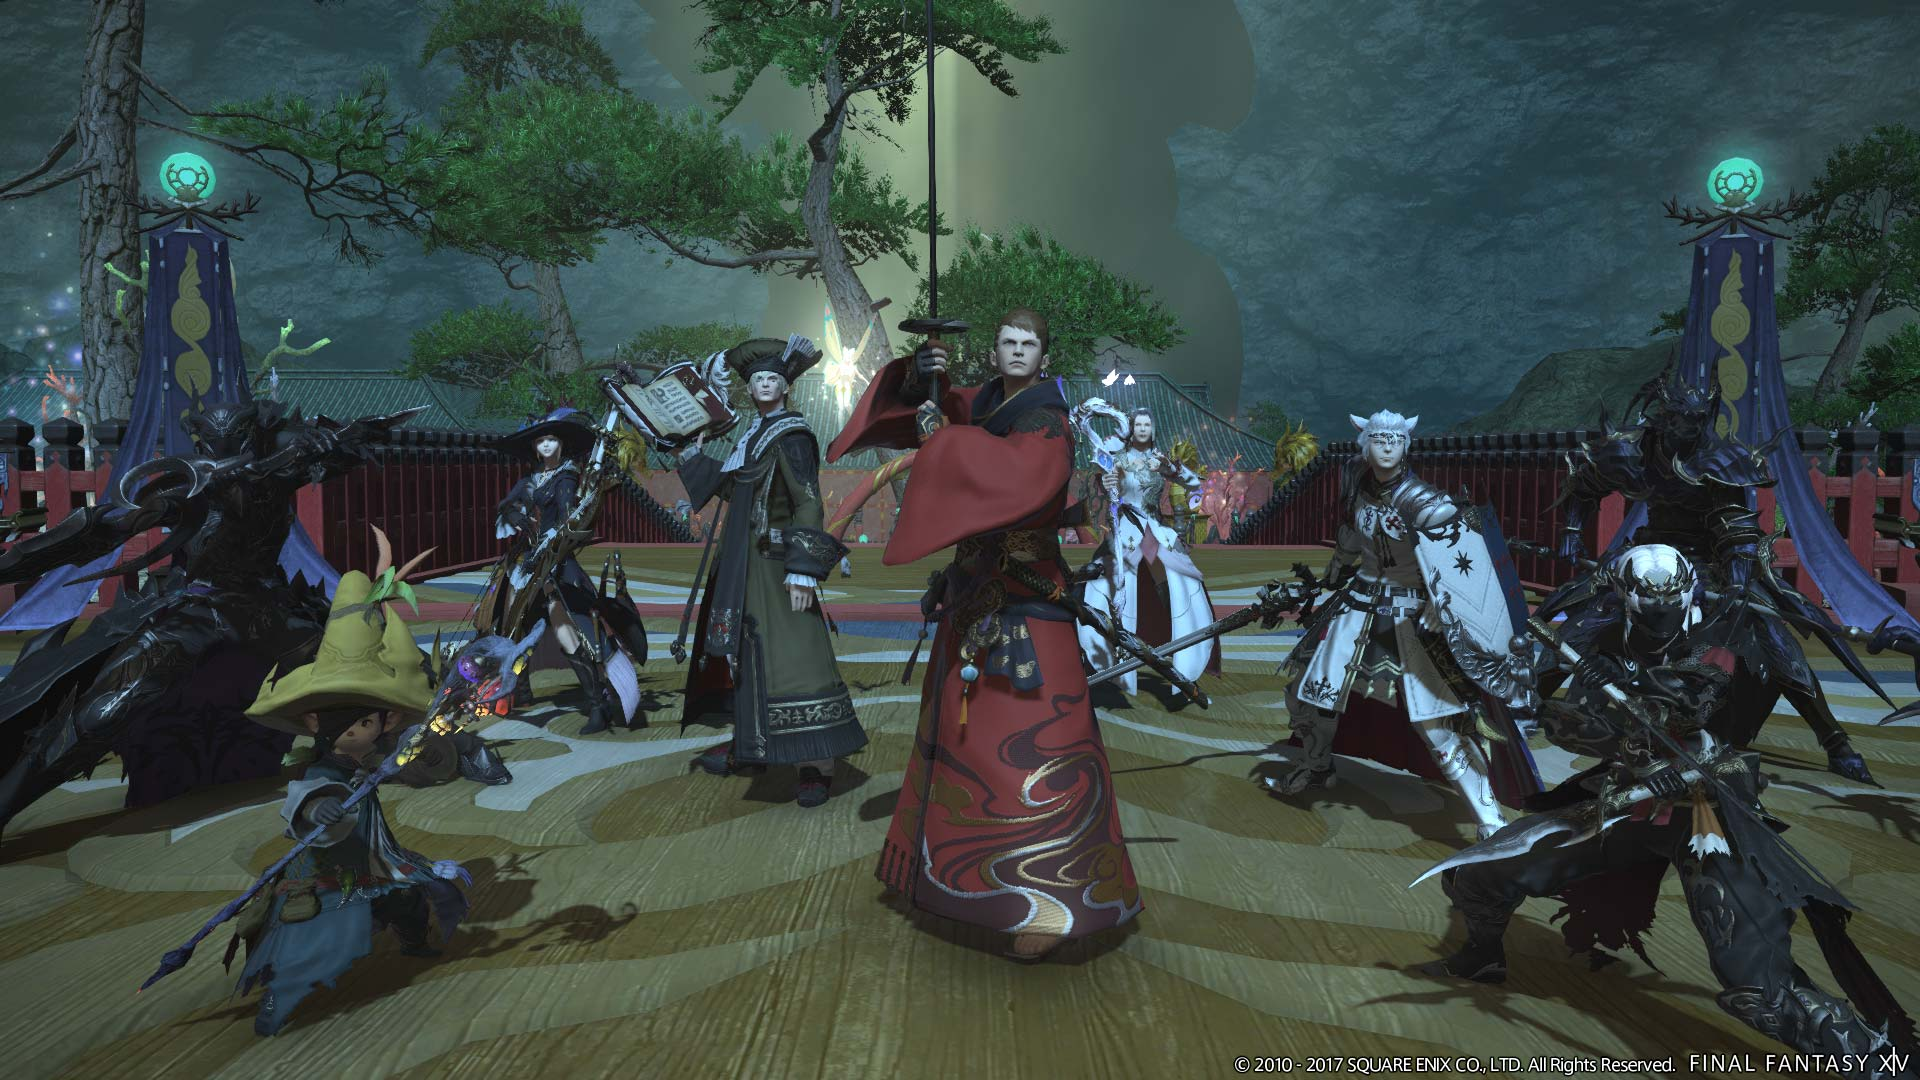 FINAL FANTASY XIV Online Complete Edition On PS4